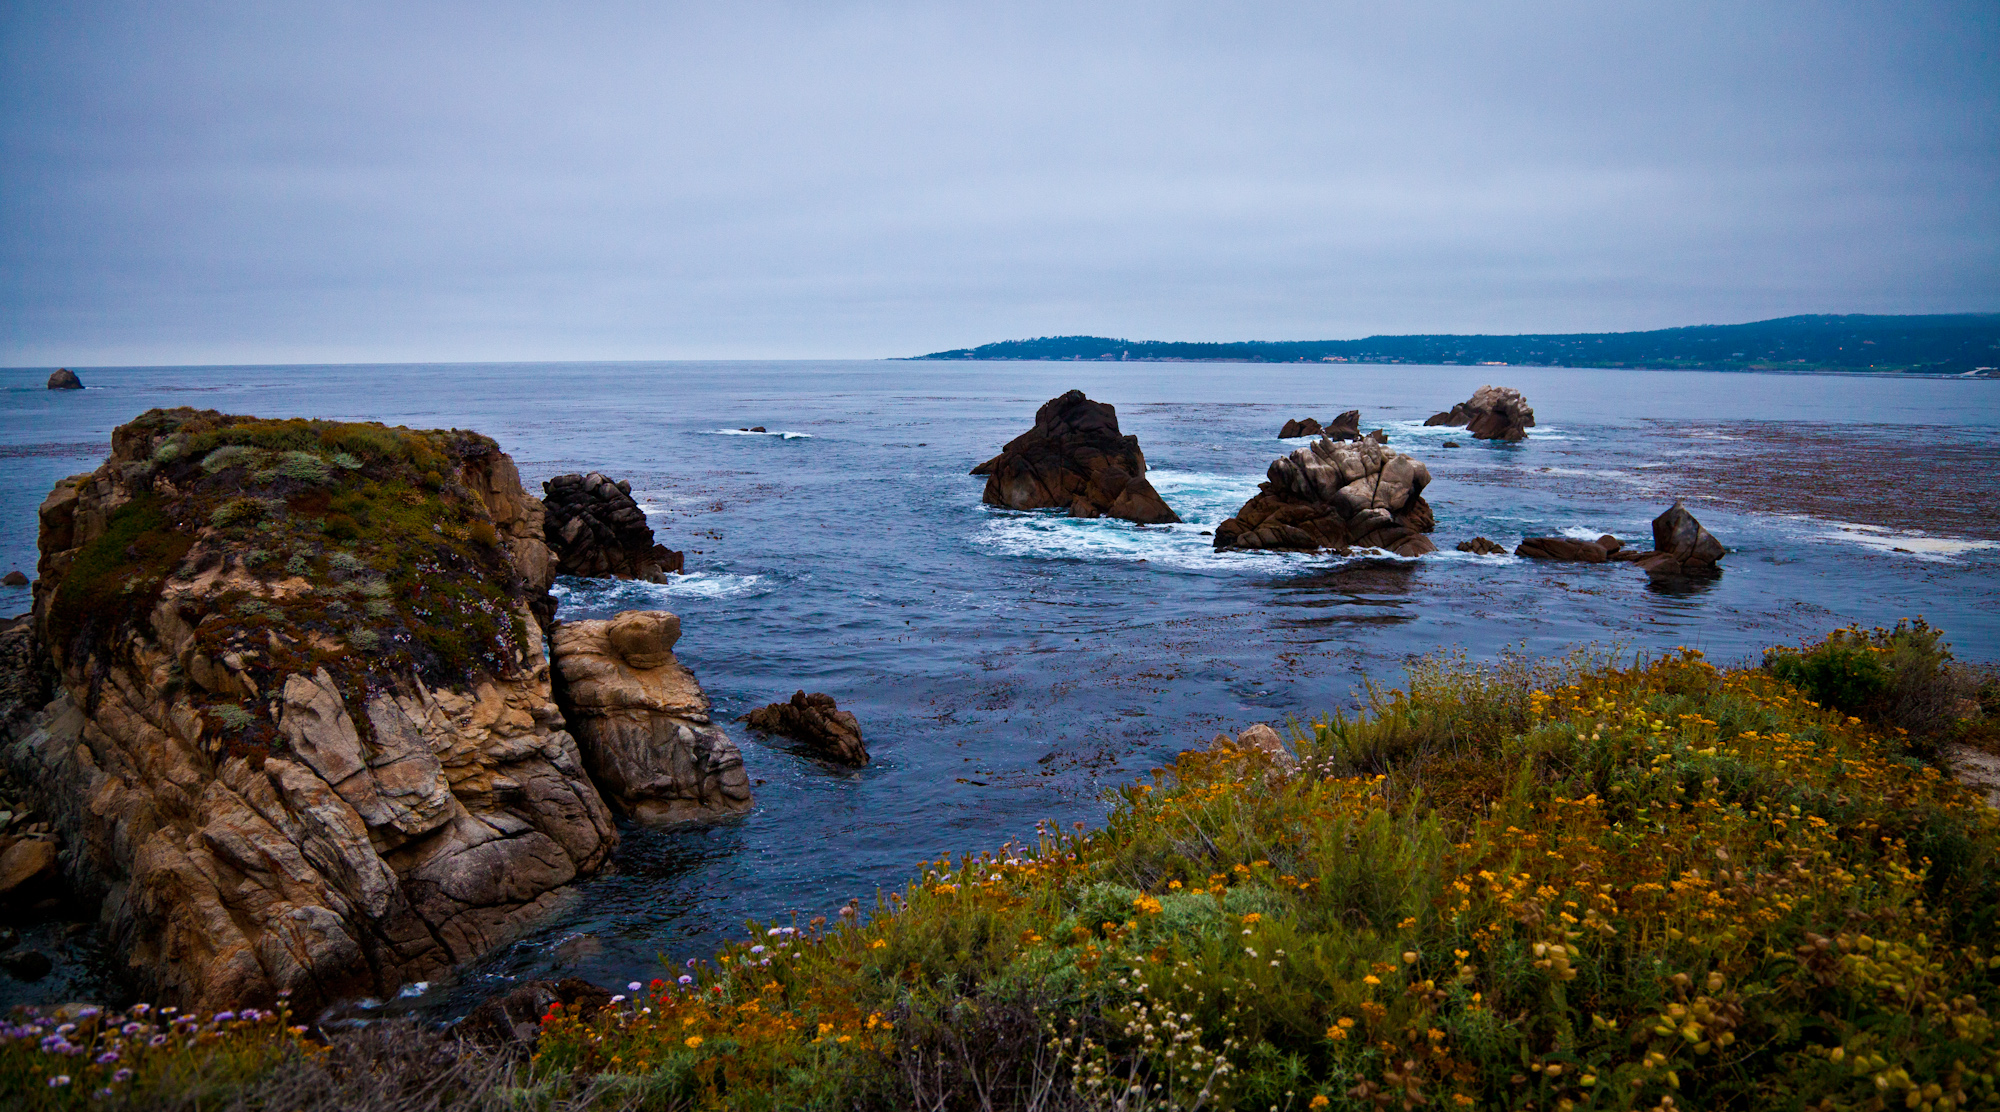 "A side trip to Point Lobos just before the Leguna Seca racing event... I had to get my ""ocean fix"" in while at Monterey."